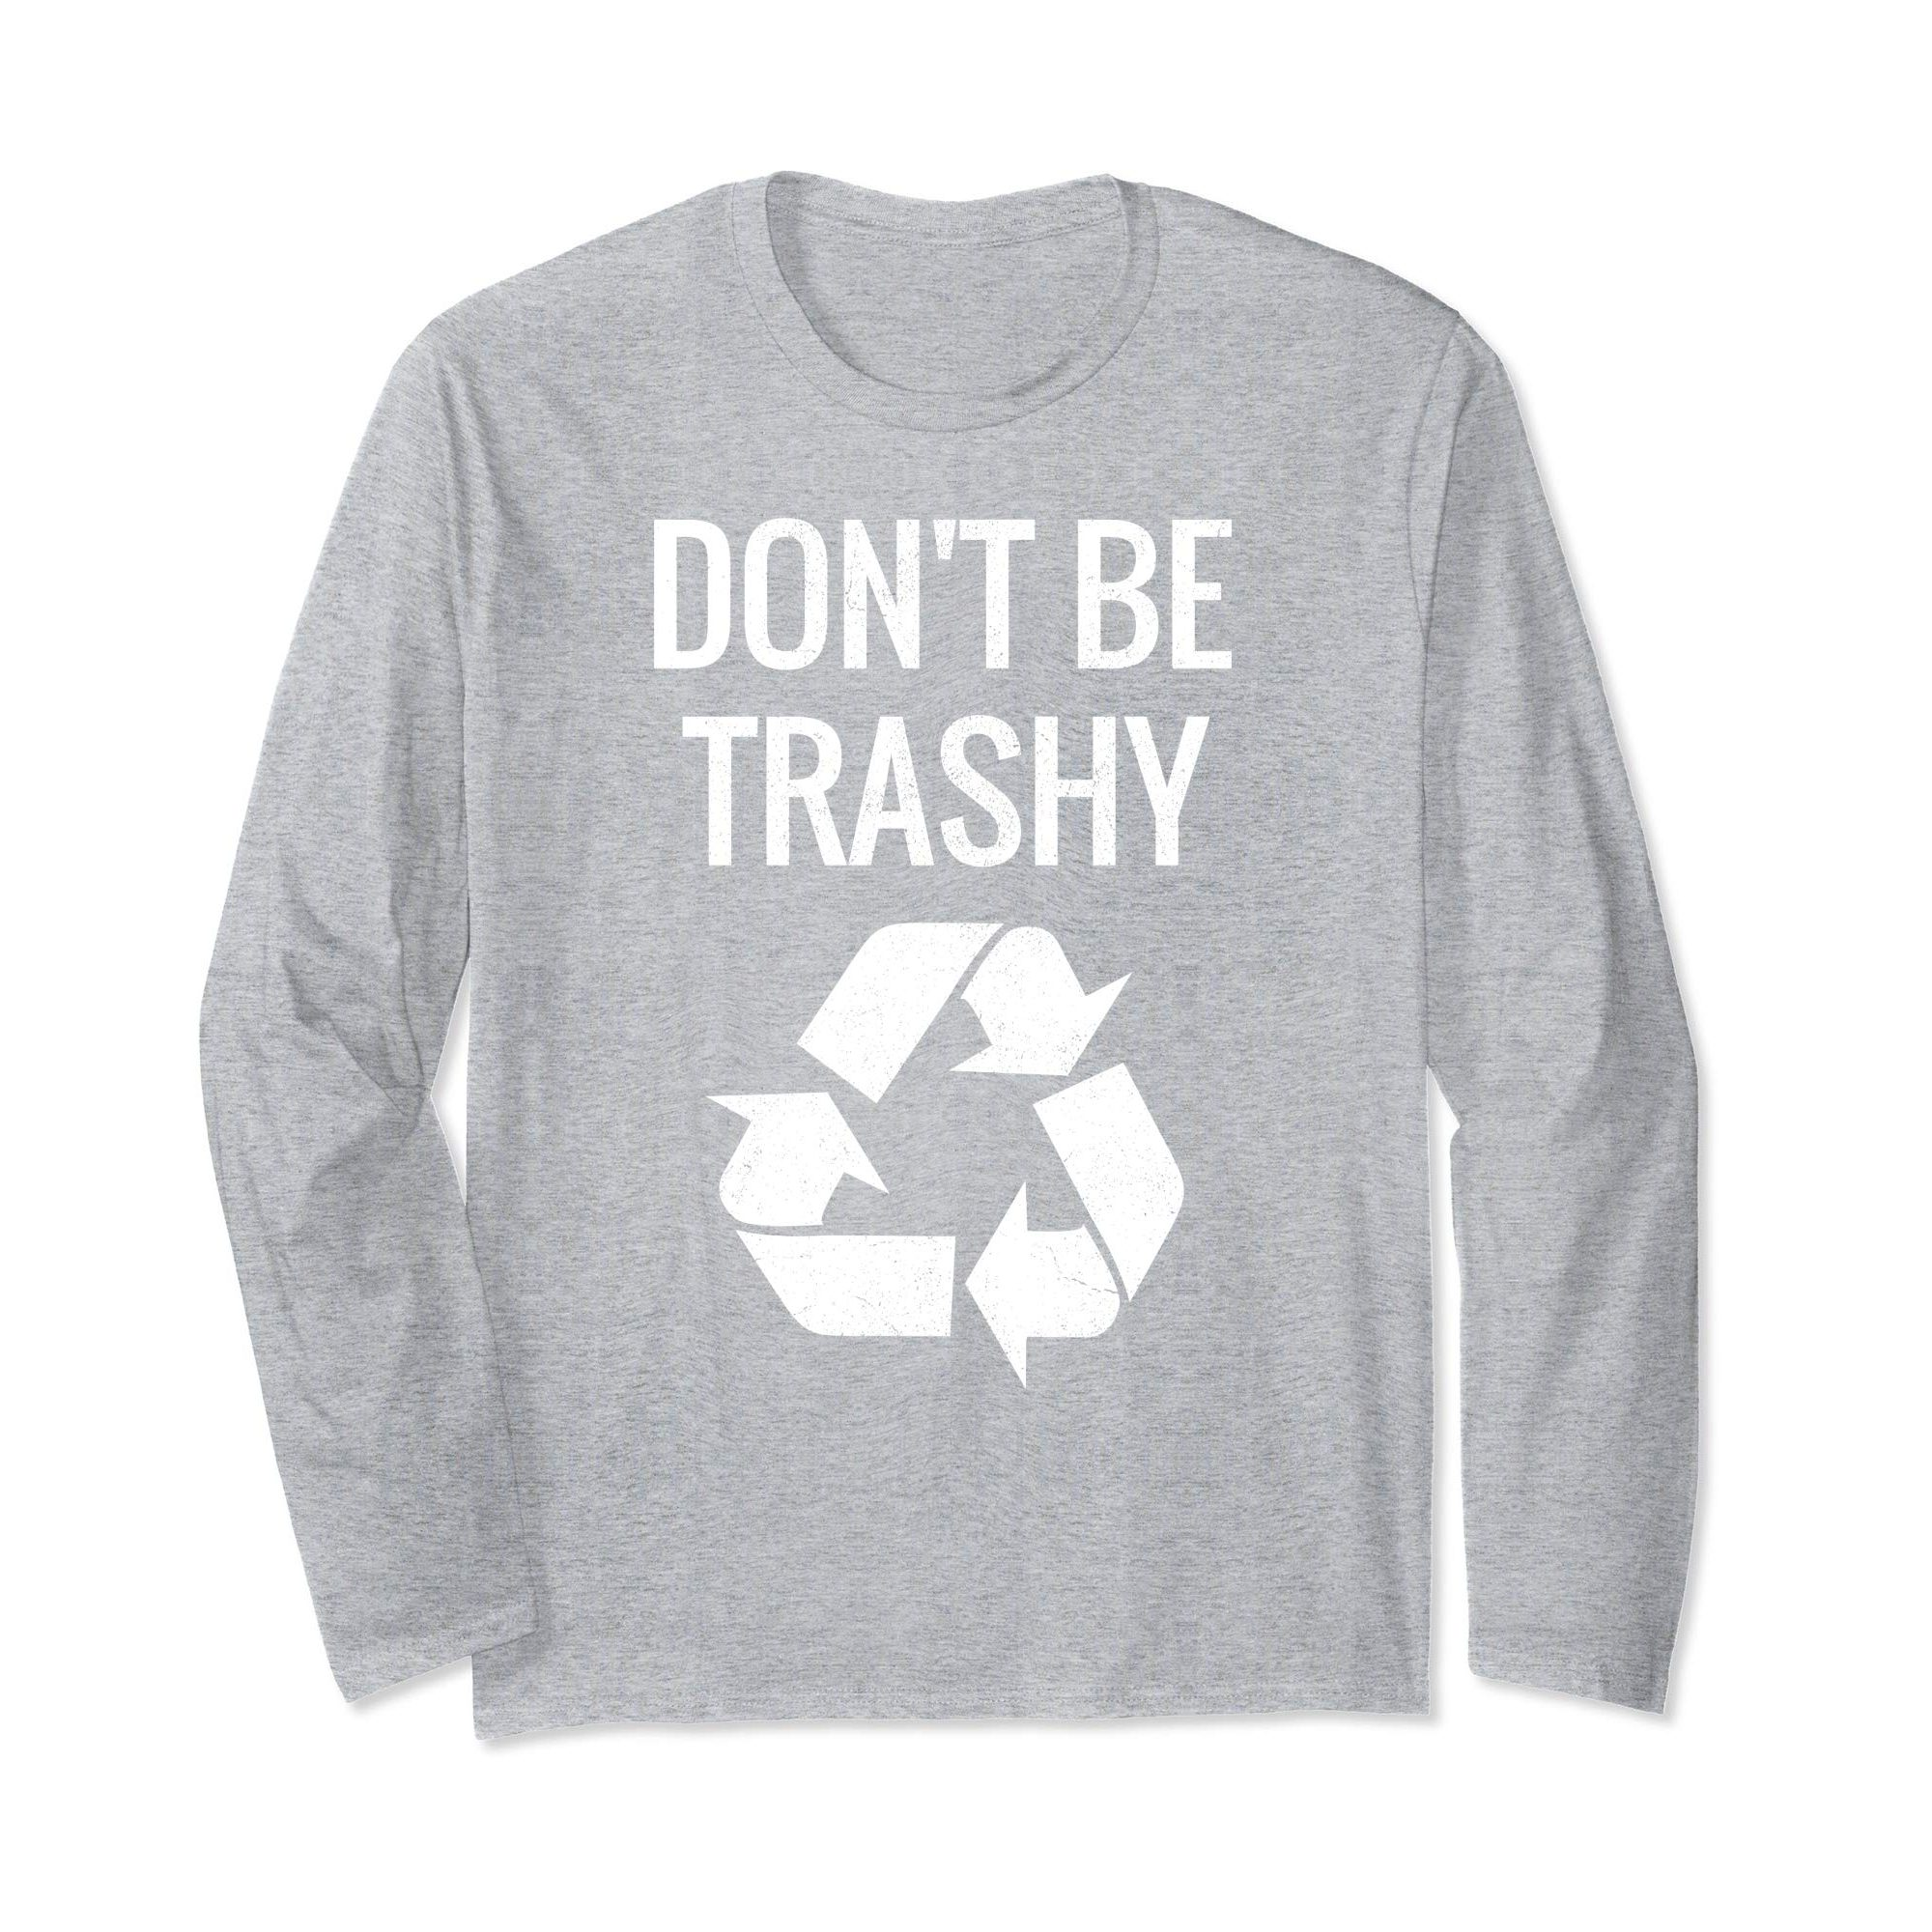 DON'T BE TRASHY GRAPHIC LONG SLEEVE T-SHIRT IN WHITE FONT